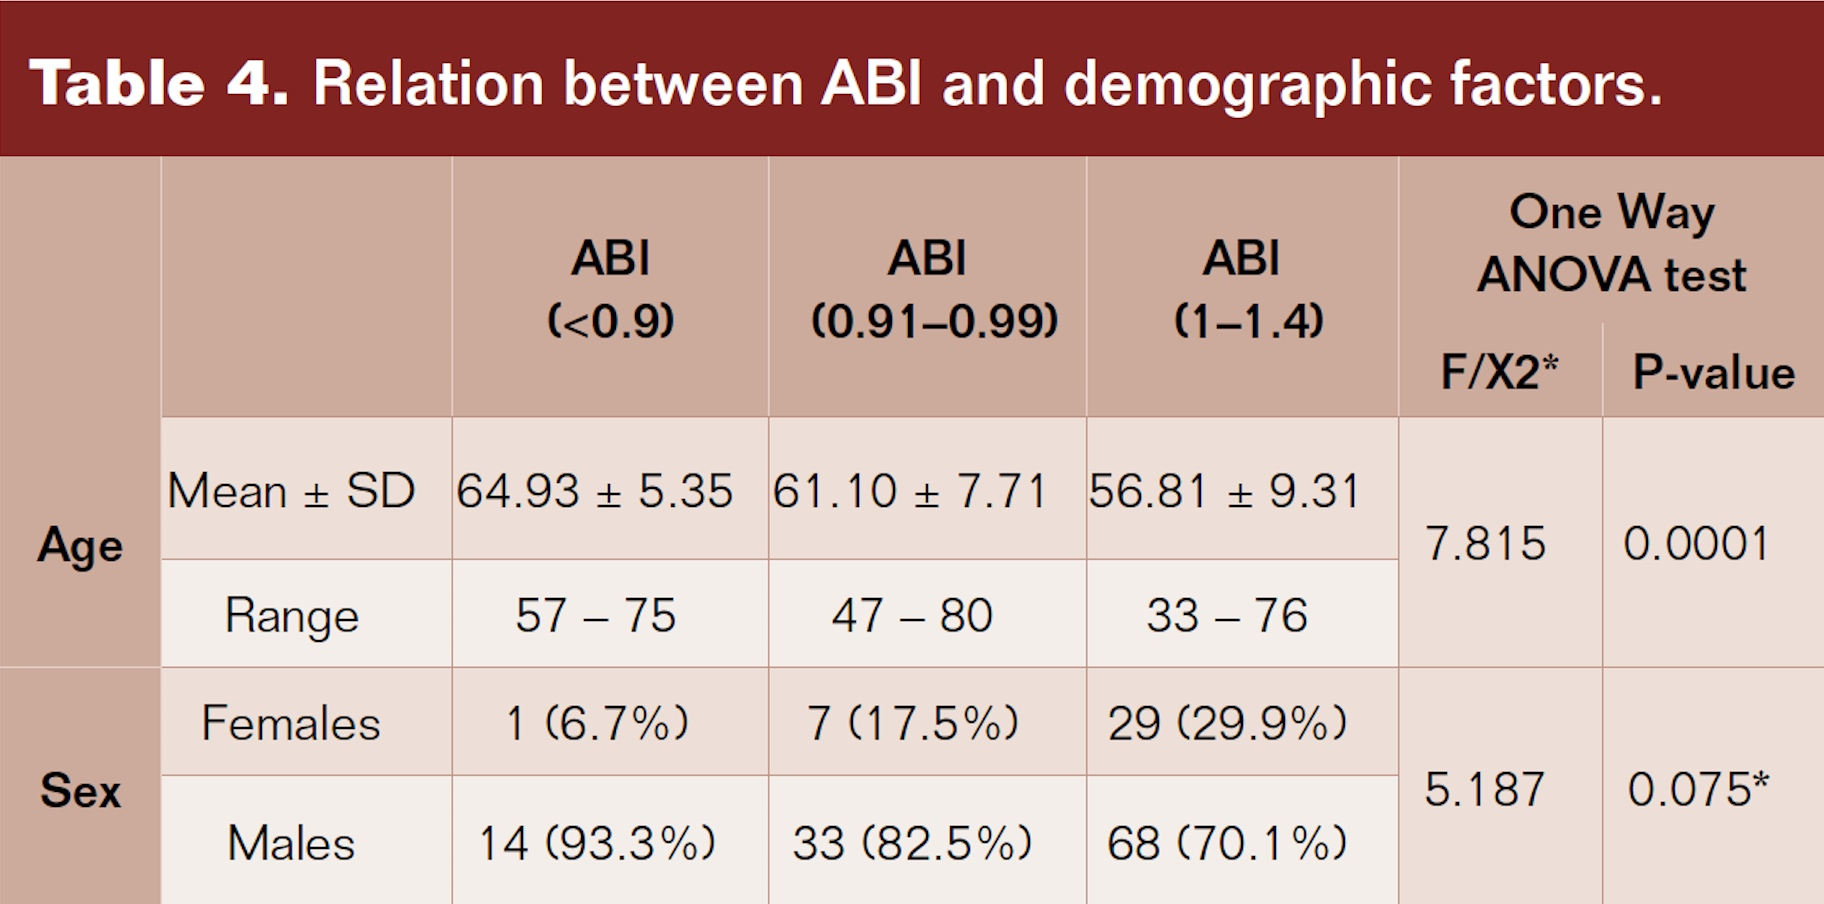 Relation between ABI and demographic factors